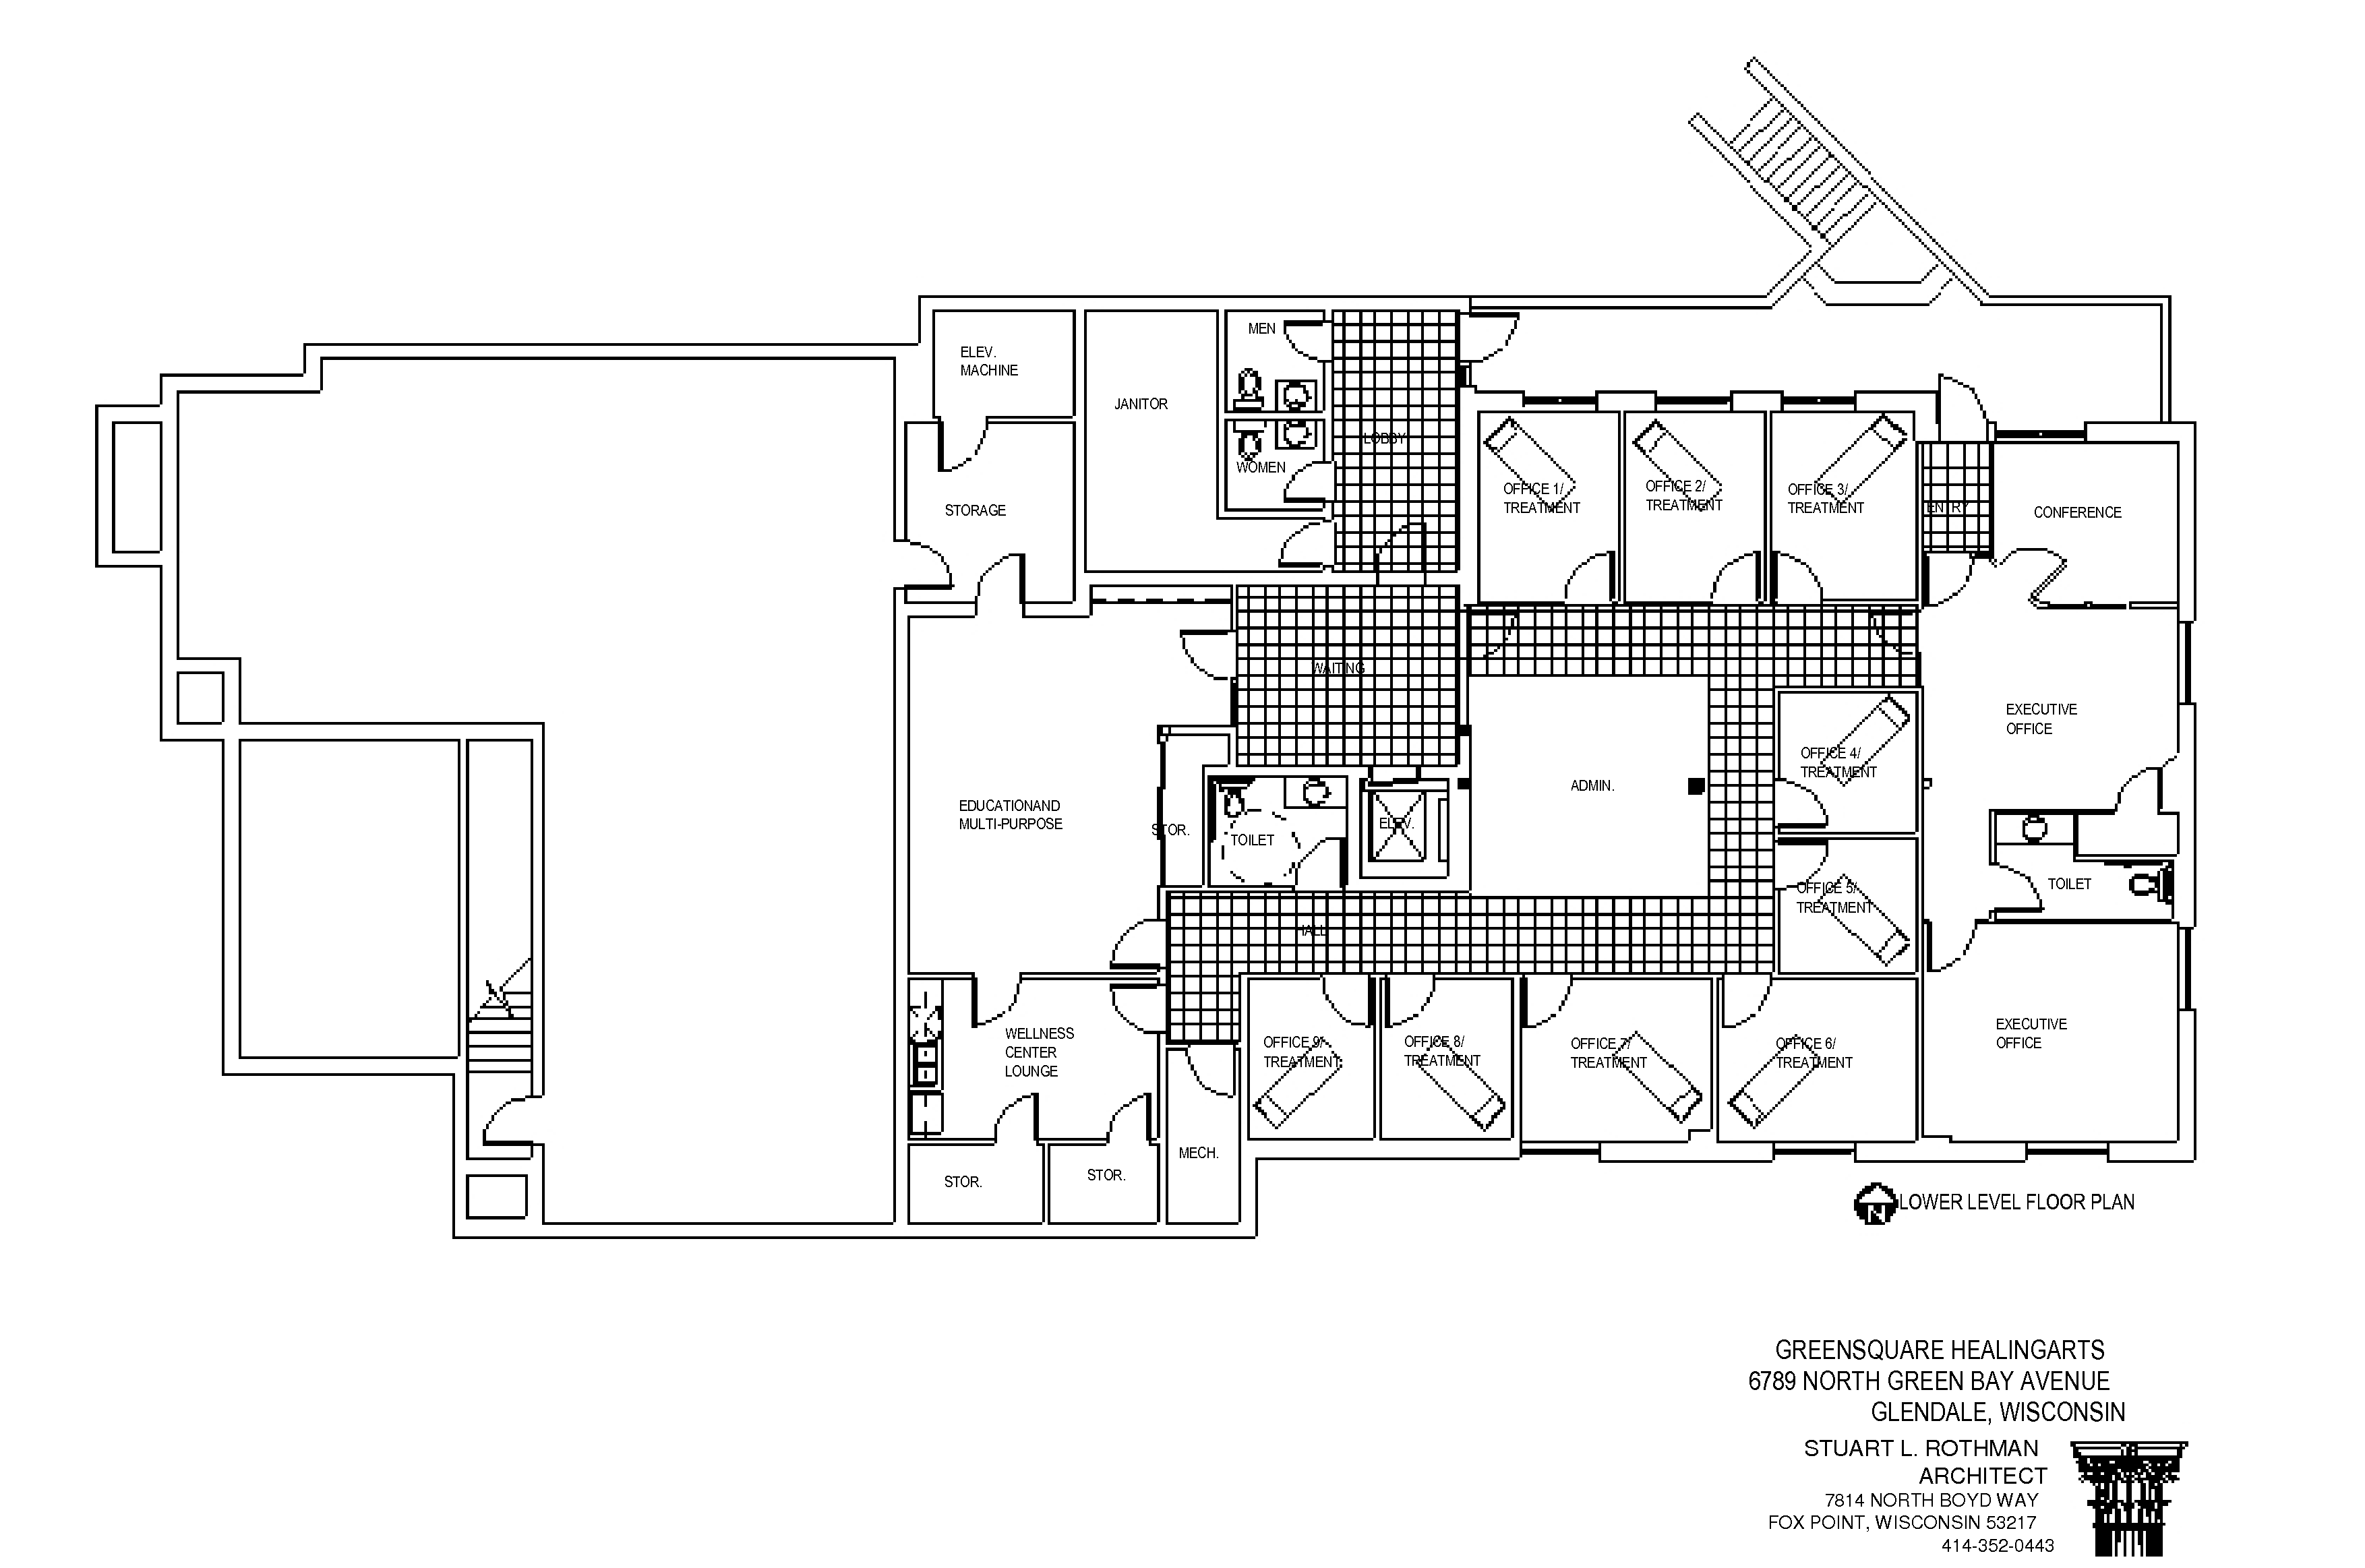 Floor Plans For Physical Therapy Clinic: Join Our Healing Community